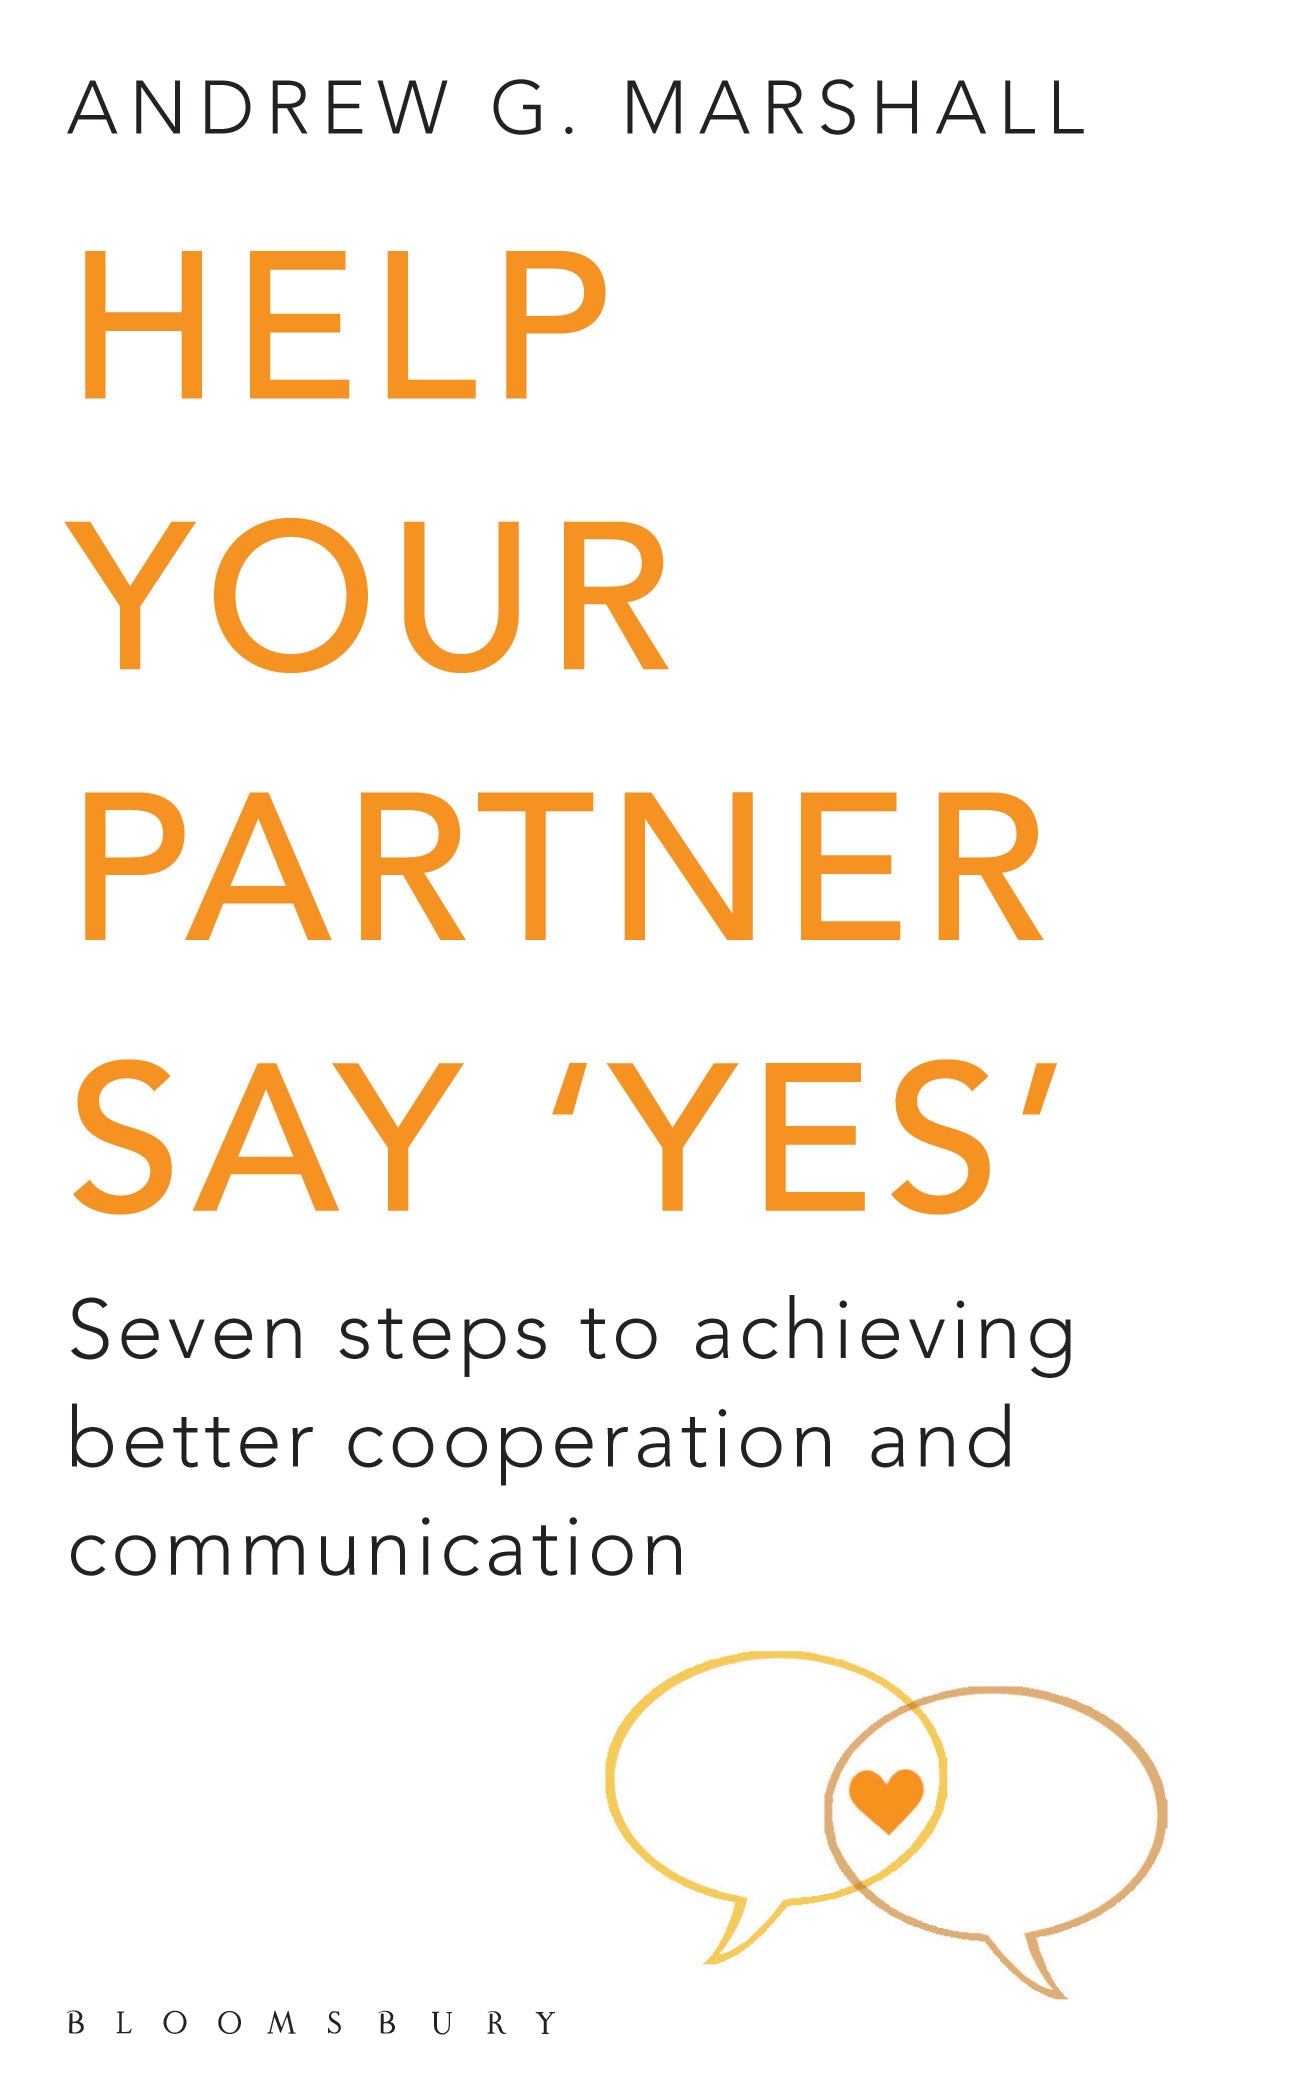 Help Your Partner Say 'Yes' Seven Steps to Achieving Better Cooperation and Communication